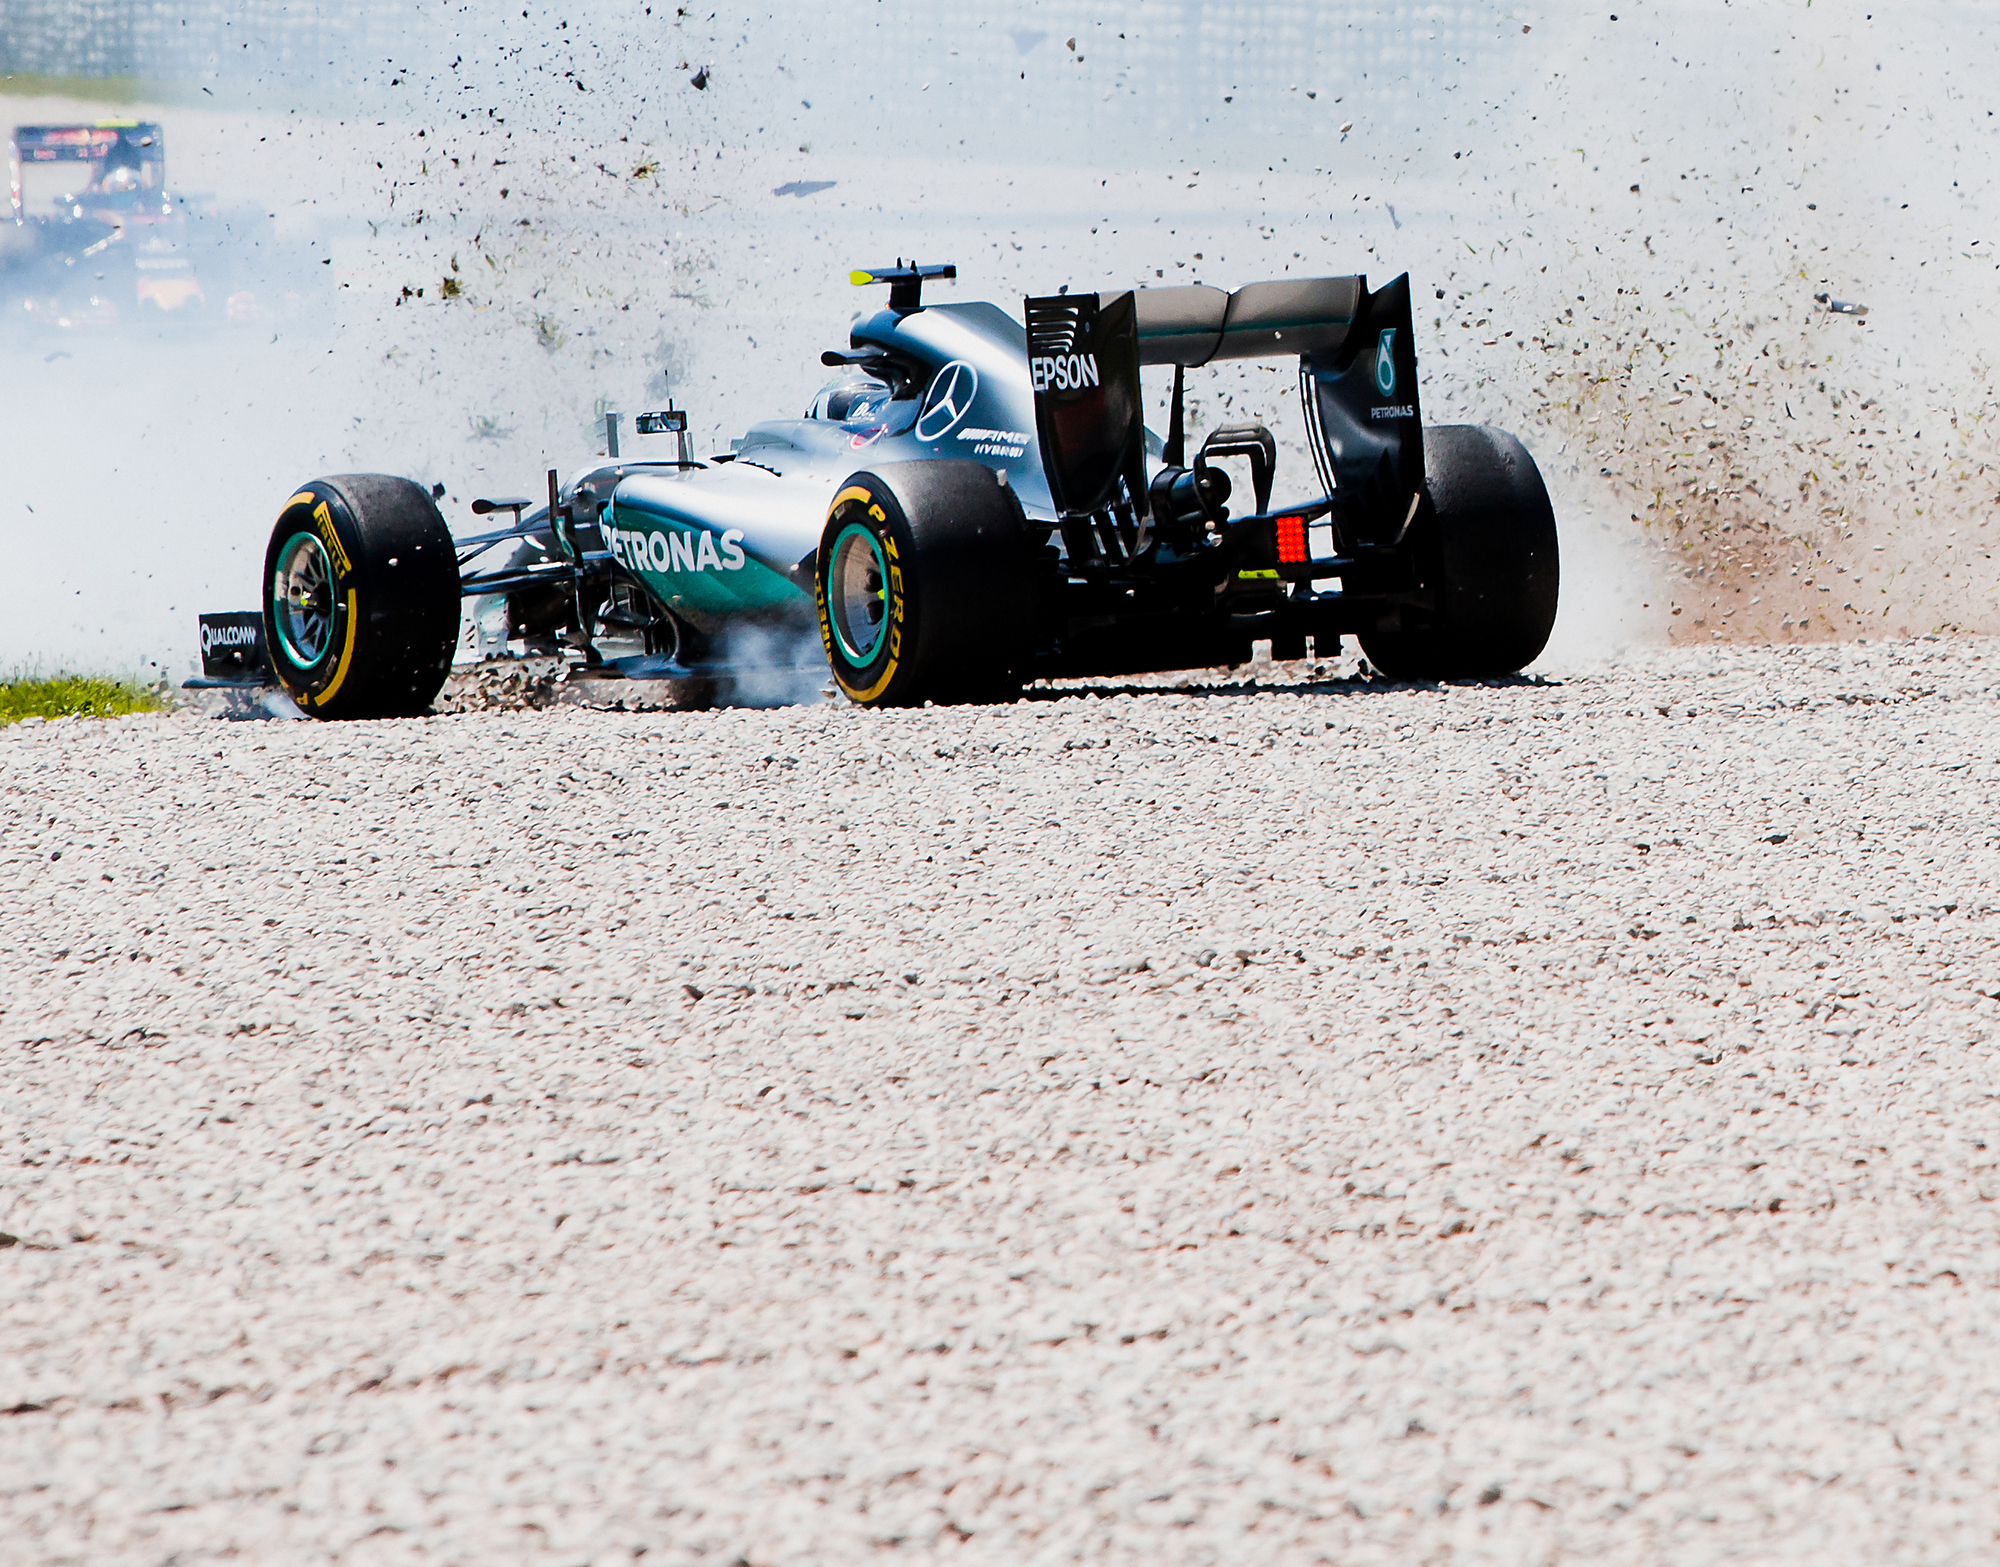 1 of 2. Mercedes Crash. Nico Rosberg, Mercedes. 2016 FIA Formula 1 Championship, Barcelona, Spain.